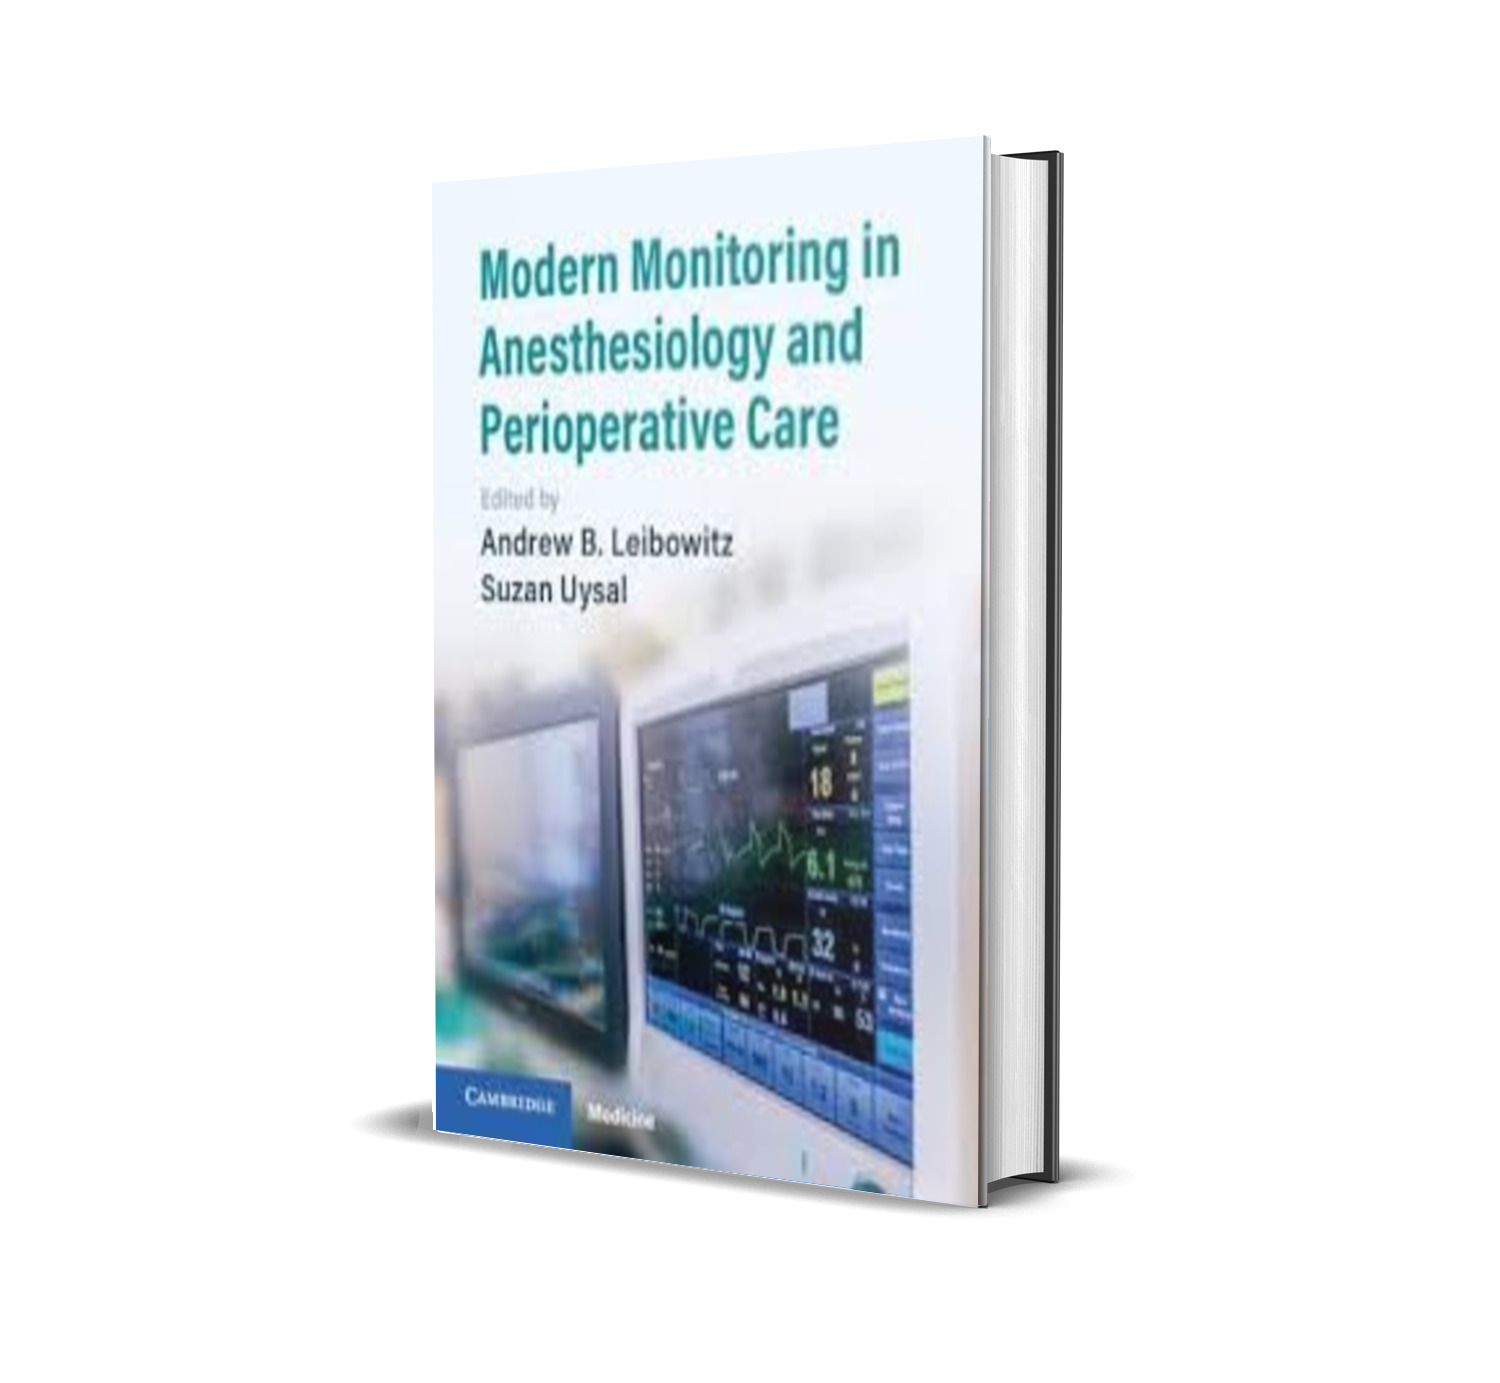 Modern Monitoring in Anesthesiology and Perioperative Care - Andrew B. Leibowitz, Suzan Uysal